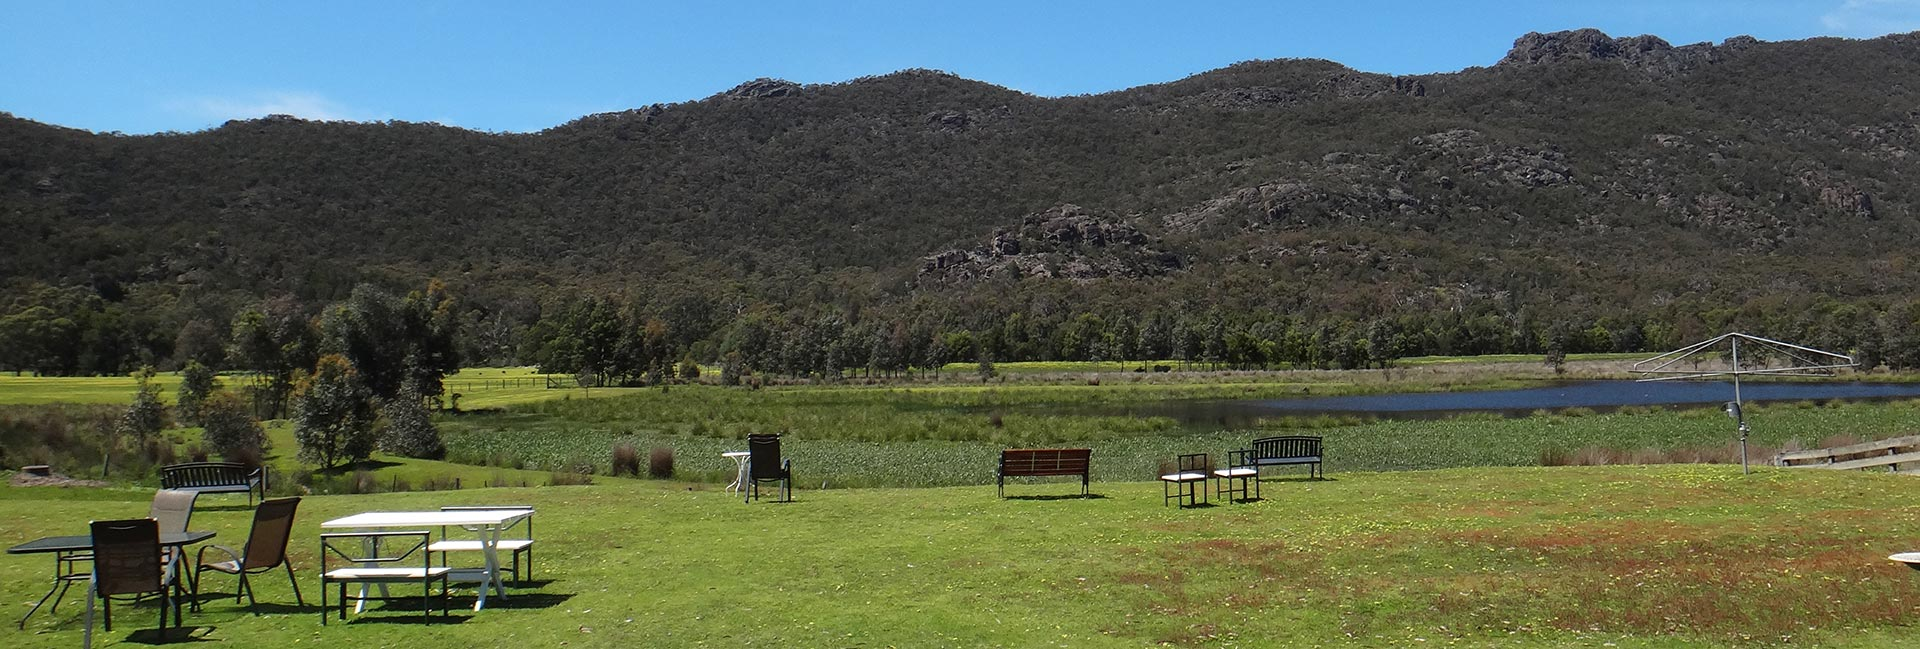 Halls Gap Motel view